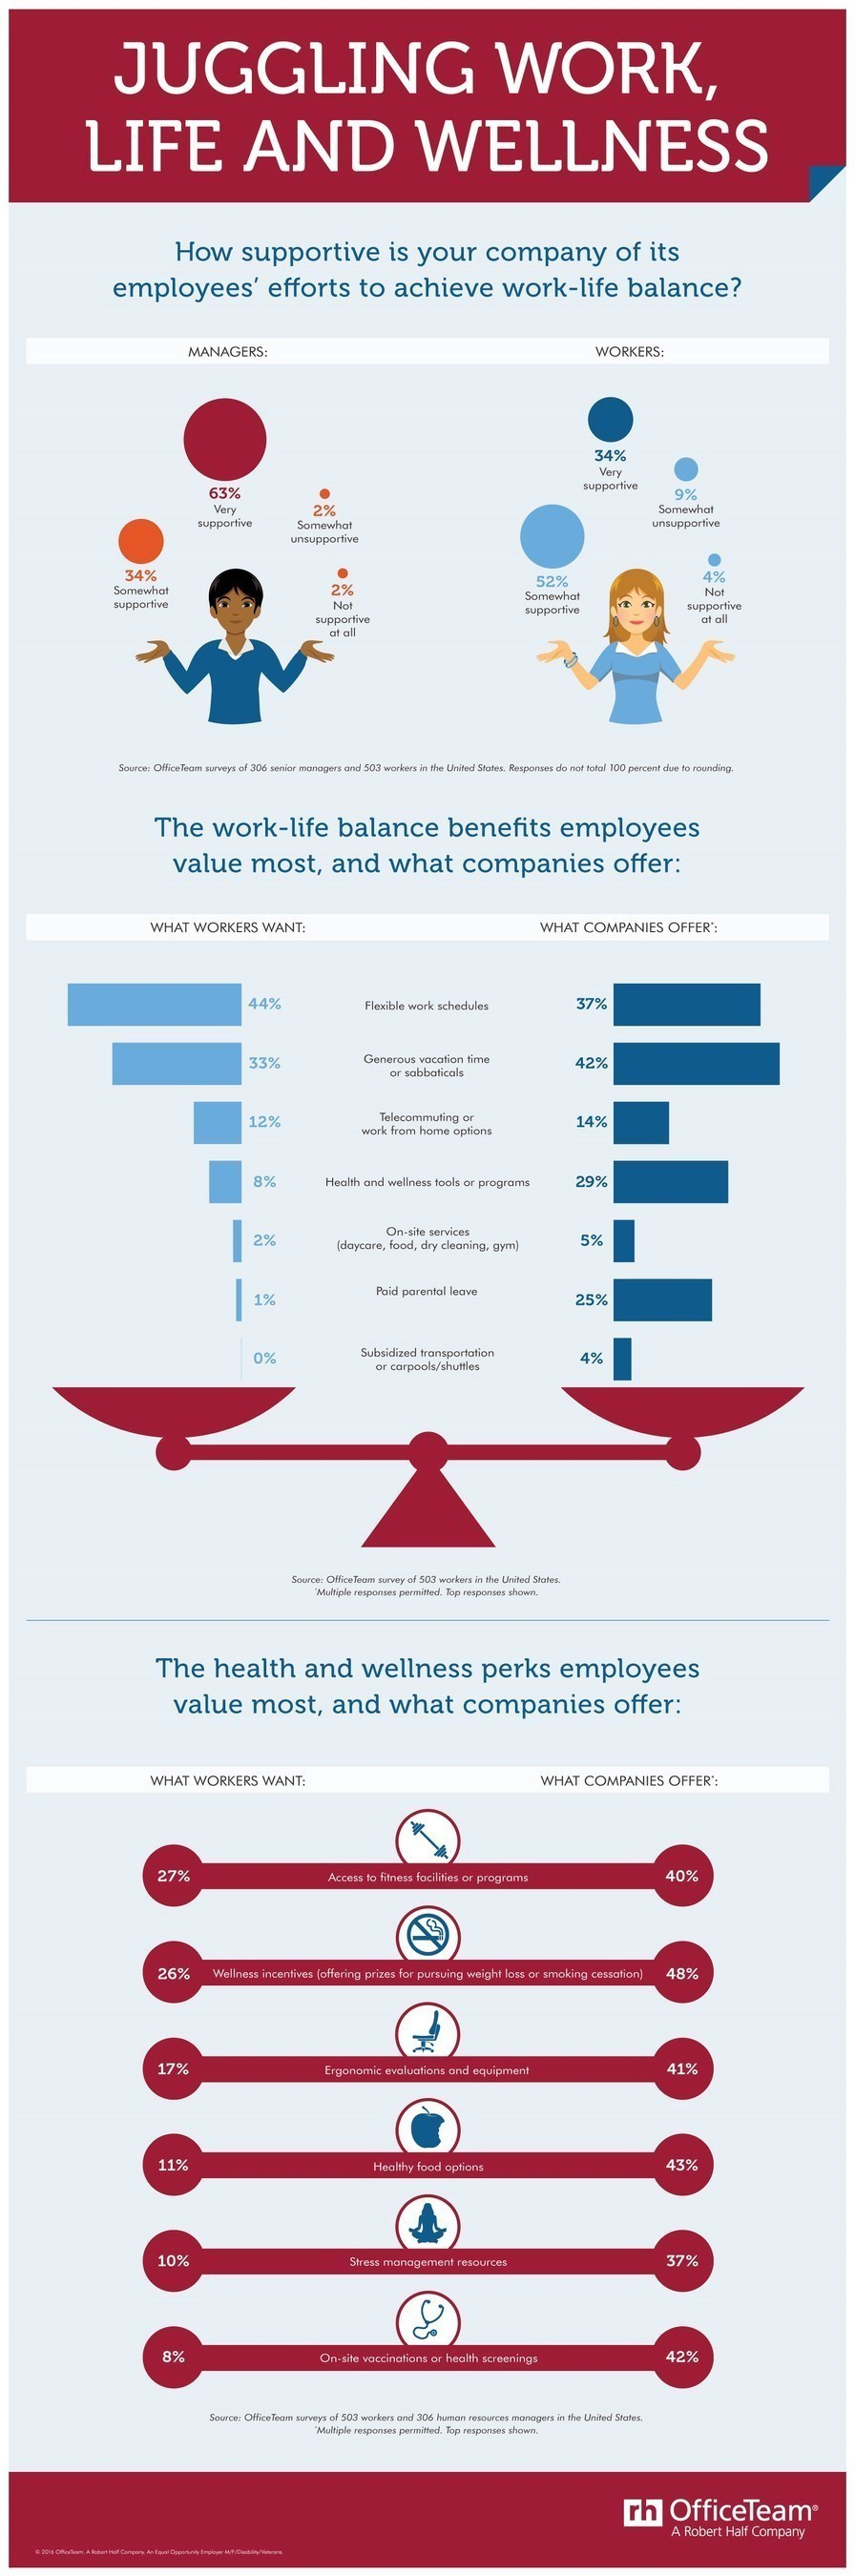 More than 6 in 10 senior managers (63%) said their company is very supportive of its employees' efforts to achieve work-life balance, yet only 34% of staff agree. Also highlighted are the work-life balance and health & wellness perks employees value most, and what companies offer.